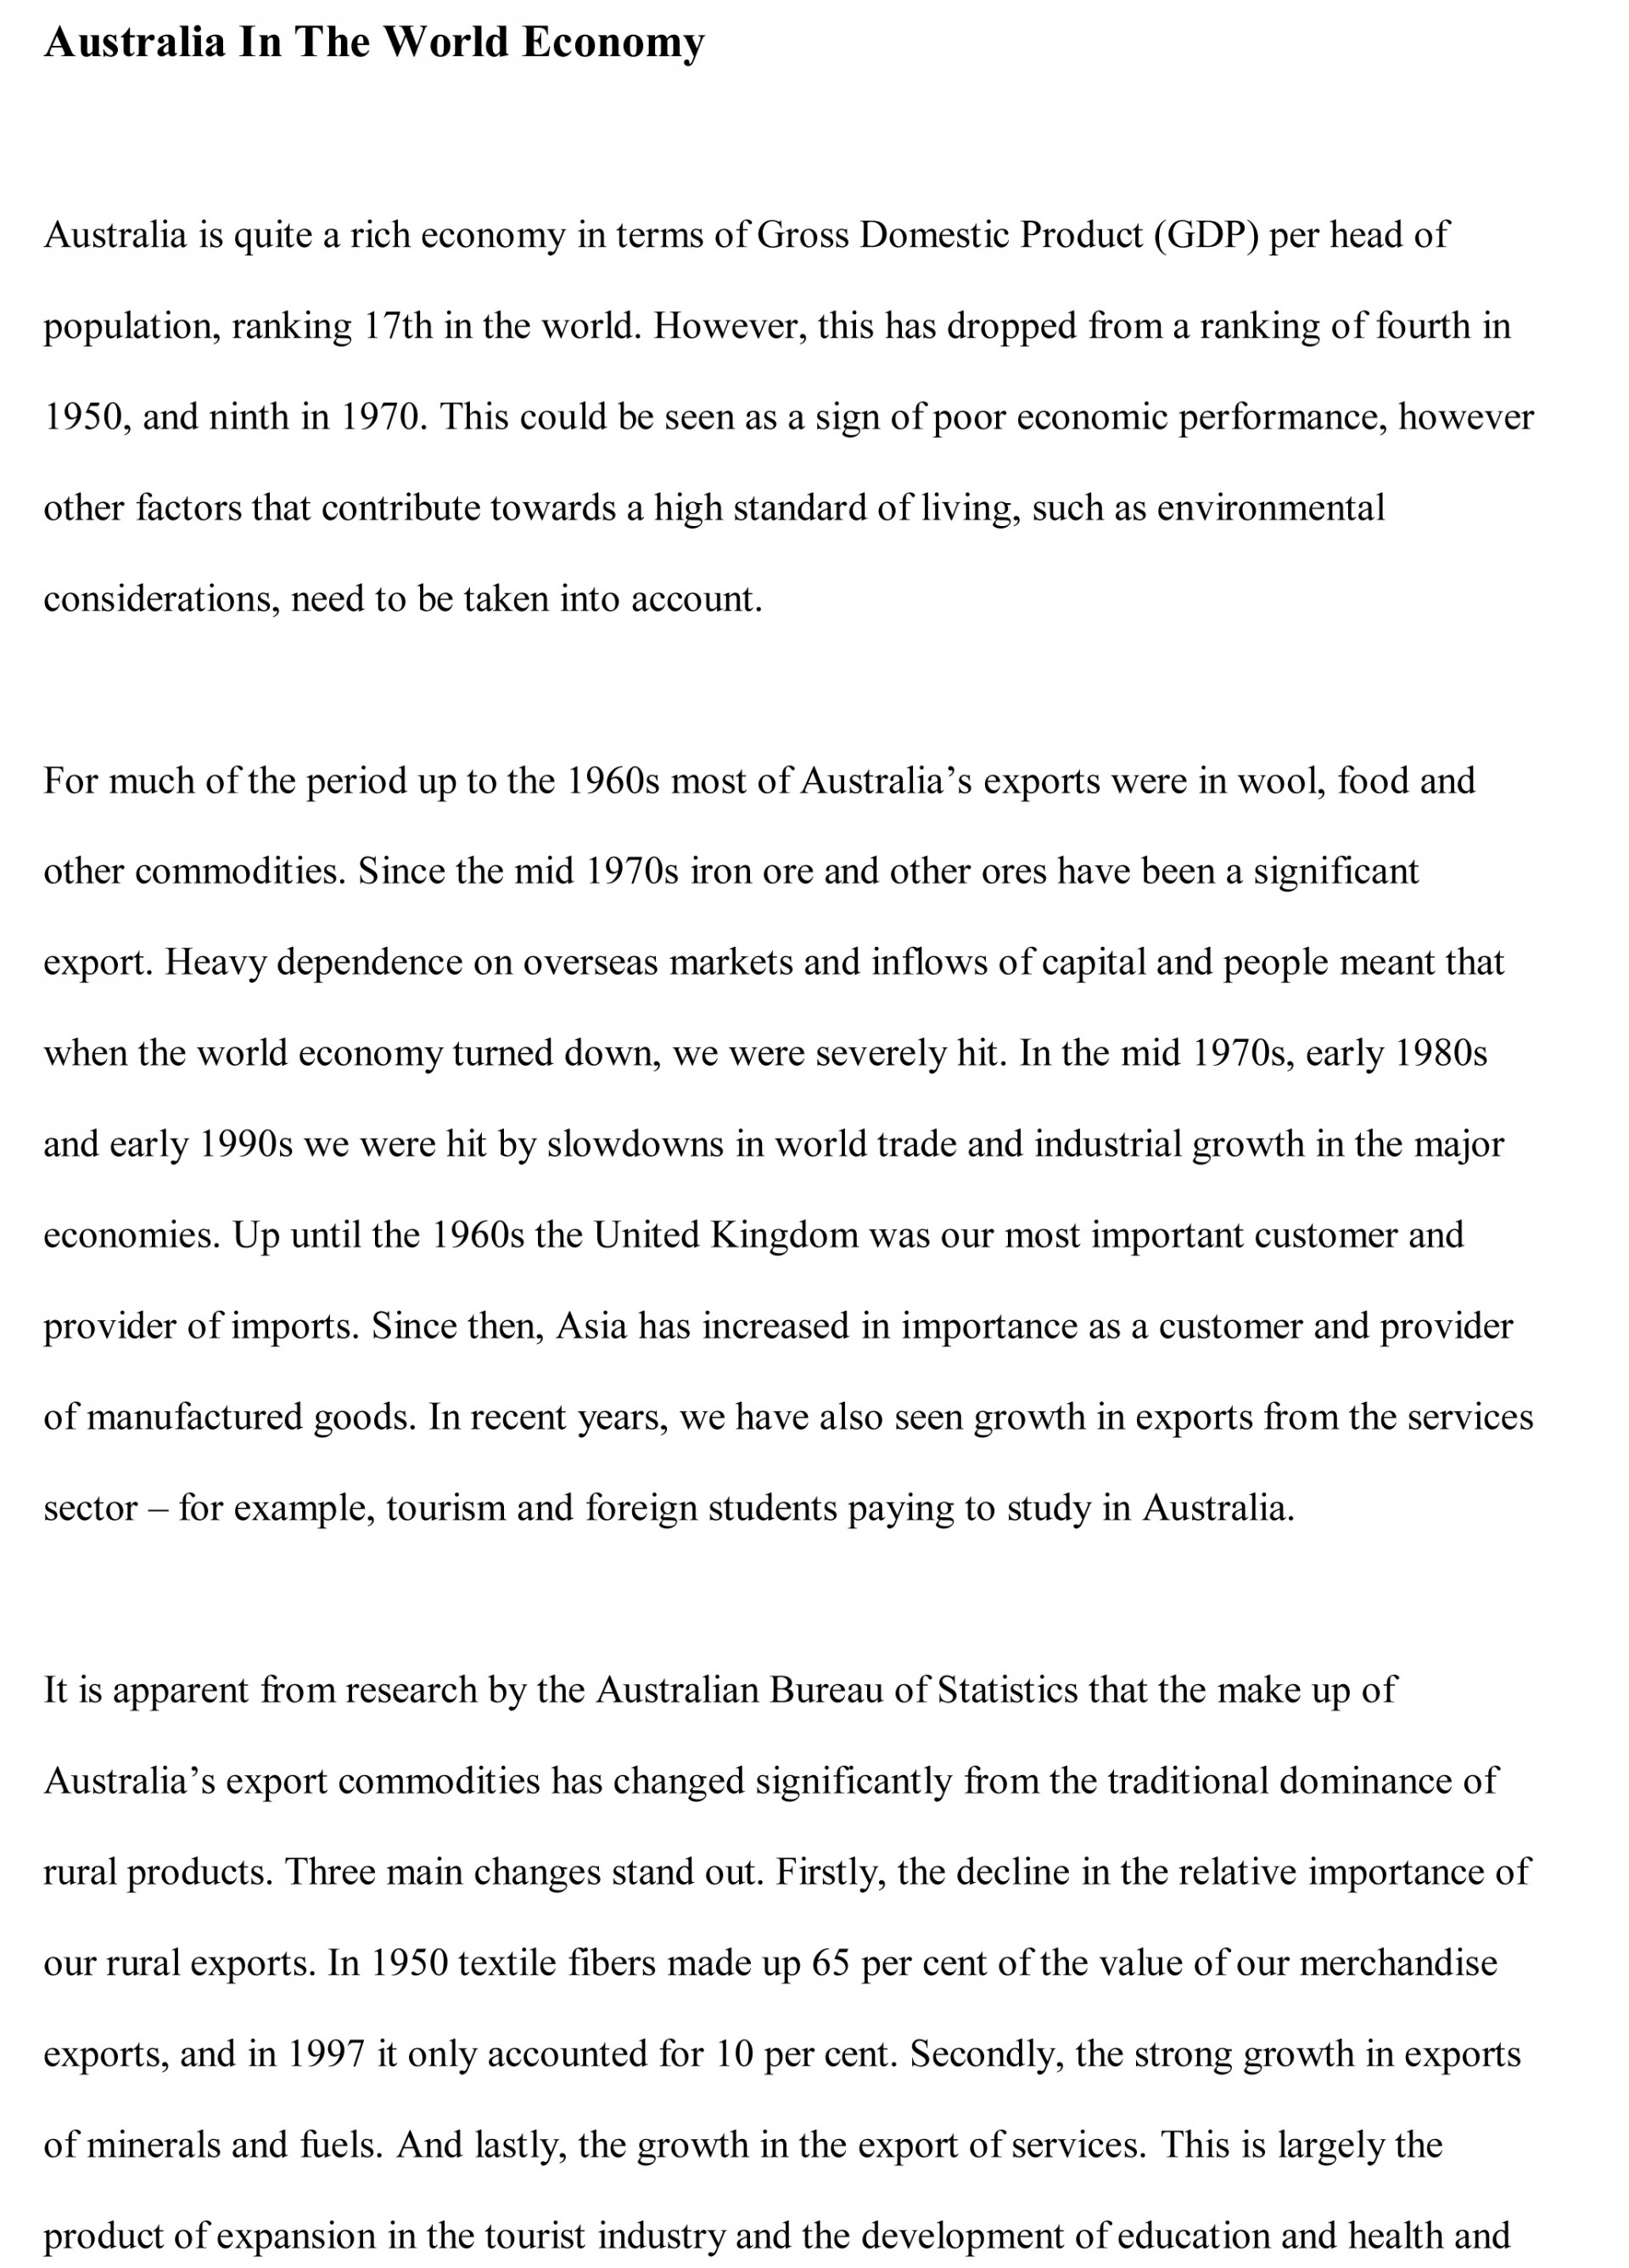 002 Marvelous Essay Example Good Introduction Examples For Essays Template Economics Free Sample Amistad Structure Writing Frightening Discount Code Uk English 1920